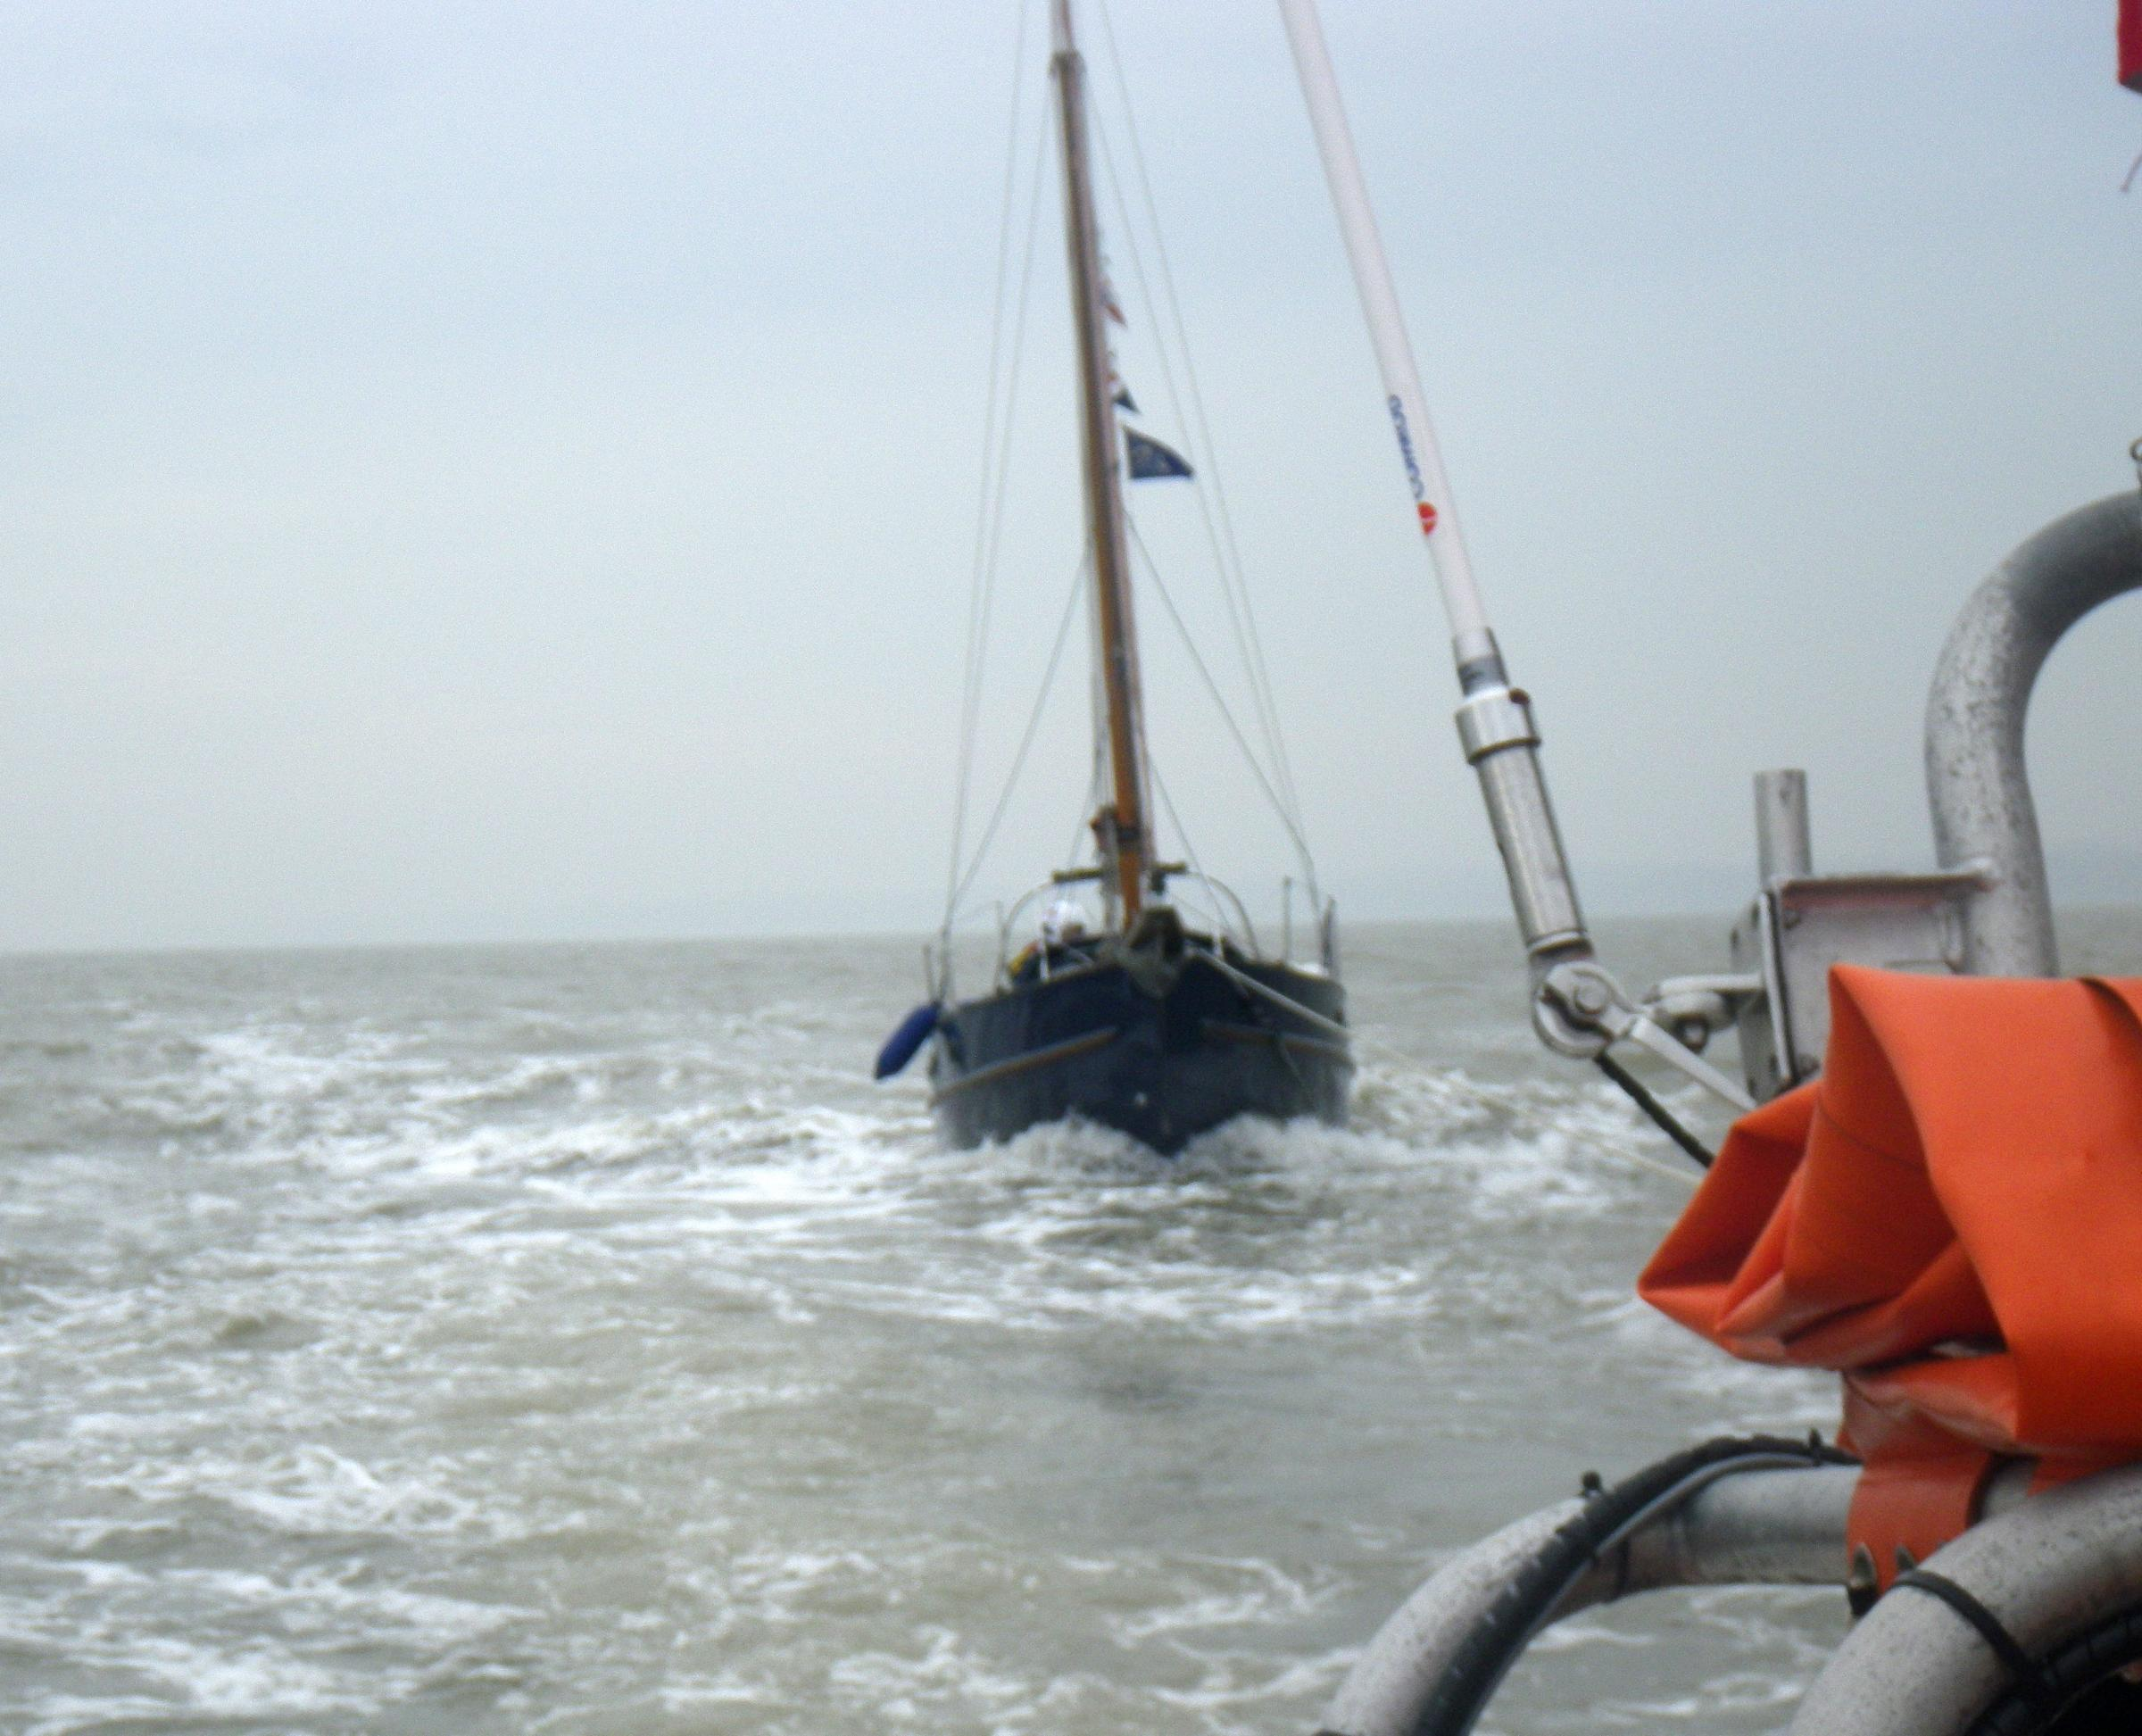 The 23-ft yacht is towed into Cowes by Solent Coastguards